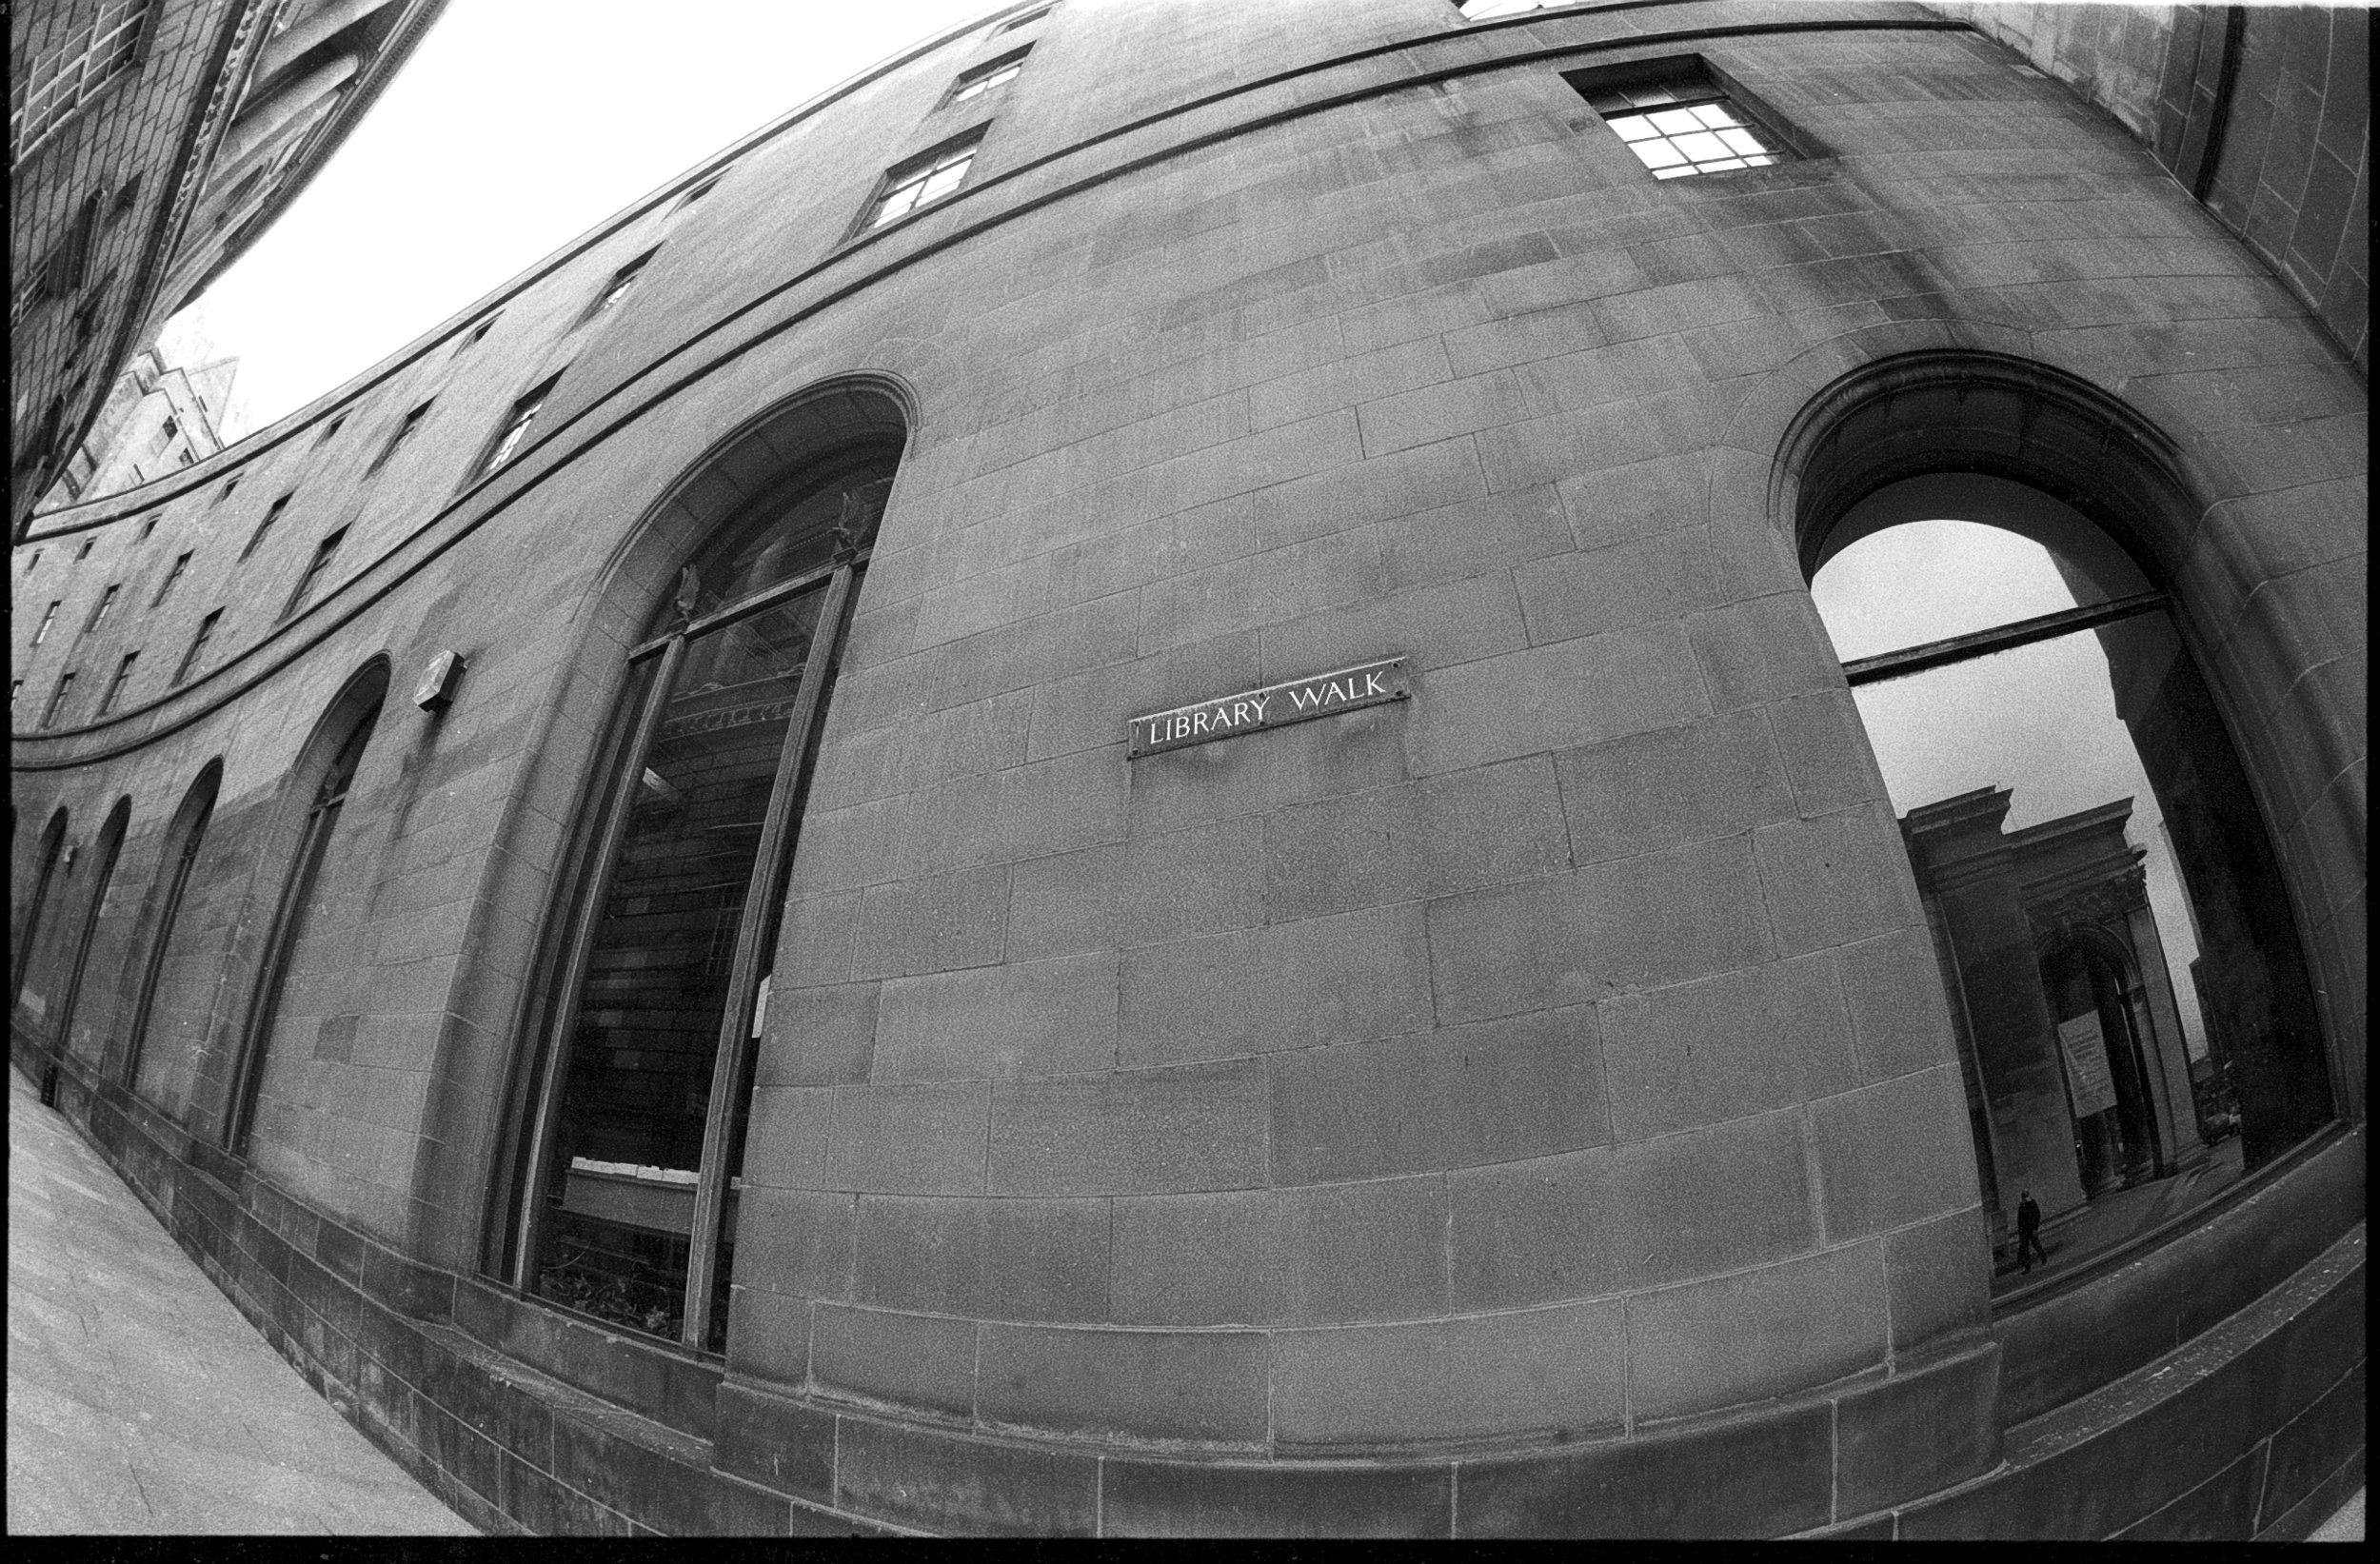 Library Walk, Manchester